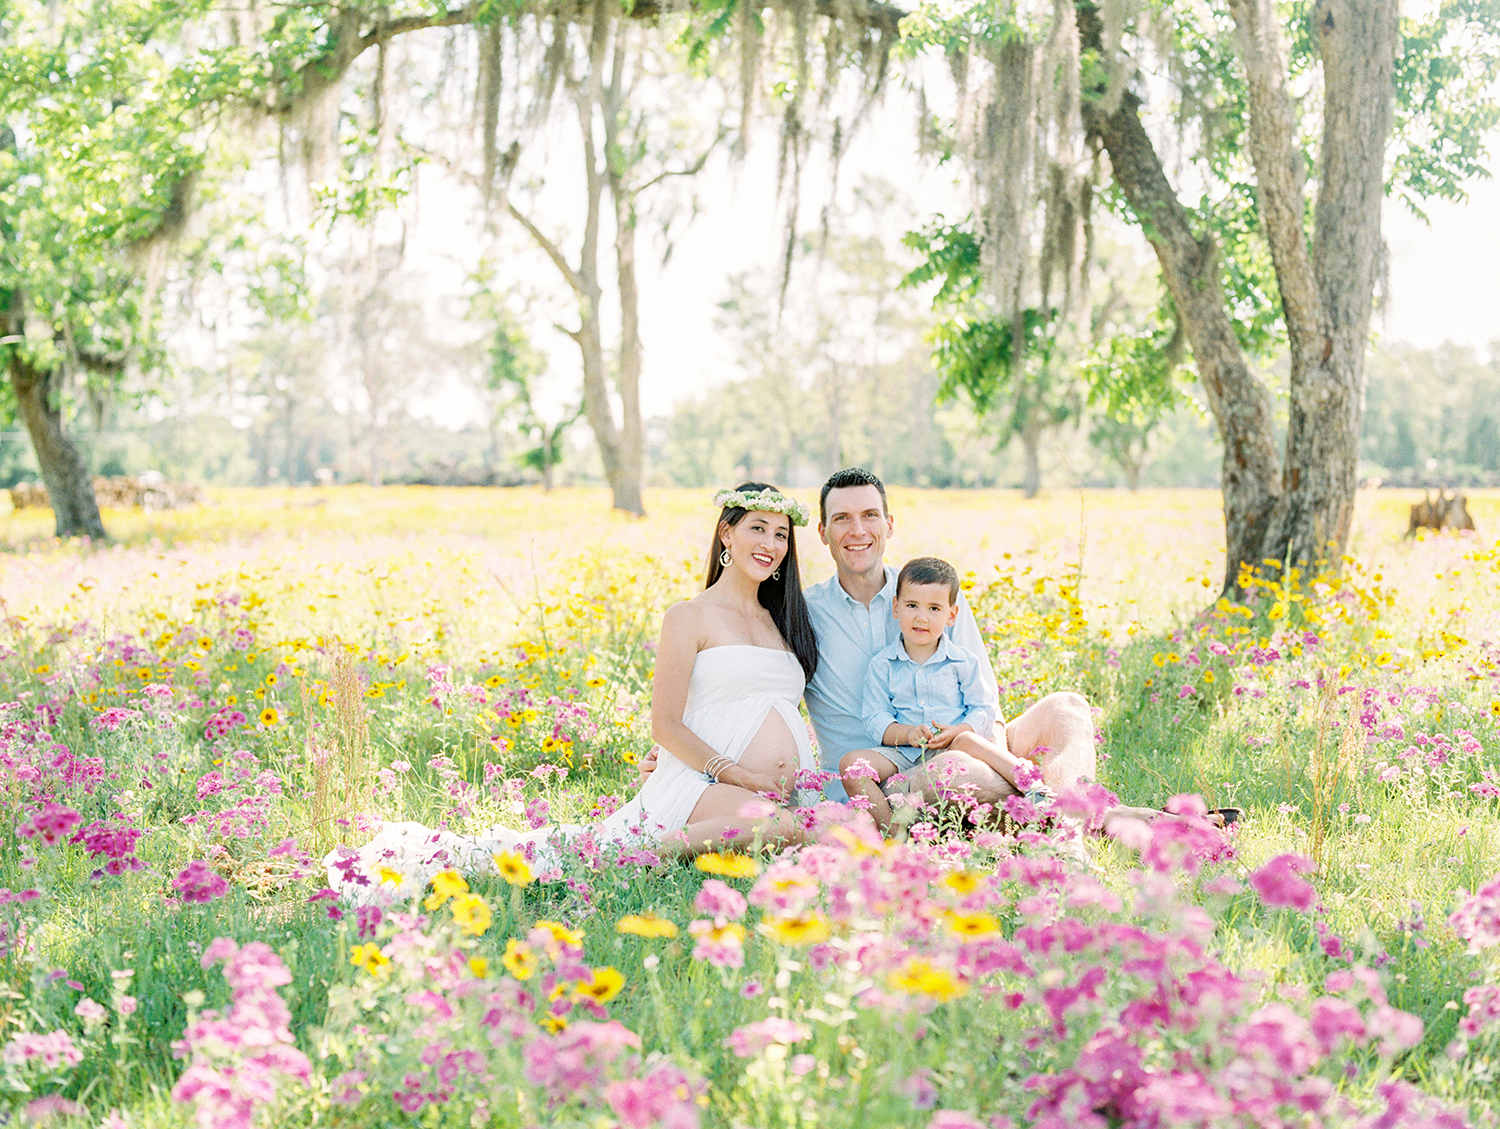 Family Maternity Session in a Flower Field- Lisa Silva Photography- Jacksonville and St. Augustine Florida Fine Art Film Photography- 9.jpg